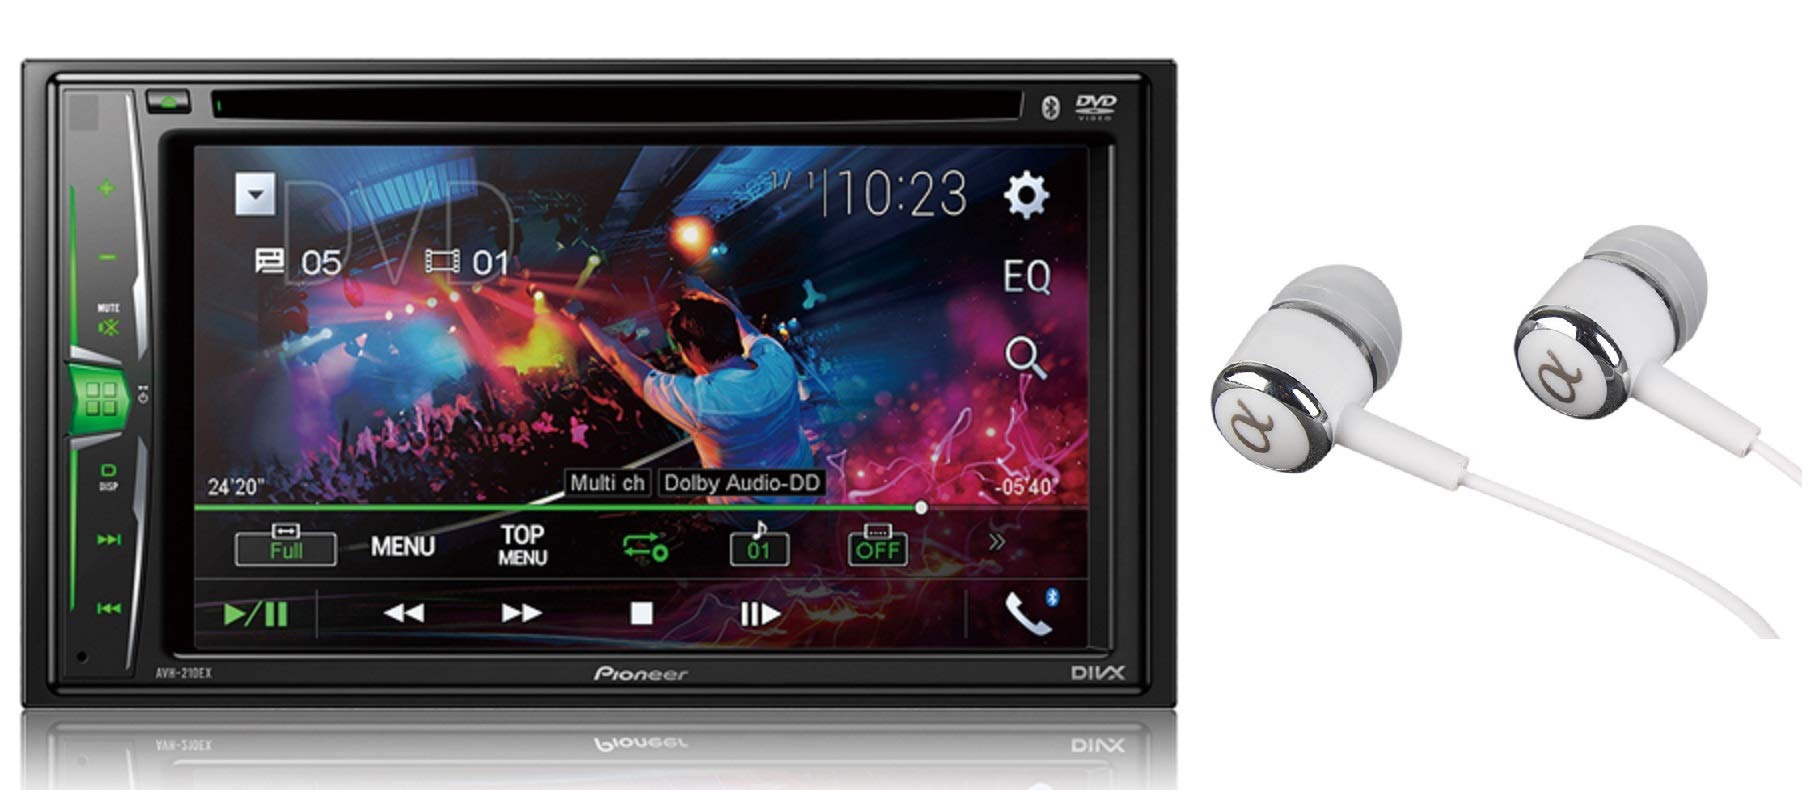 Pioneer AVH-210EX Double DIN Bluetooth In-Dash DVD/CD AM/FM Front USB Digital Media Car Stereo Receiver 6.2'' WVGA Touchscreen Display, Apple iPhone and Android Music Support/FREE ALPHASONIK EARBUDS